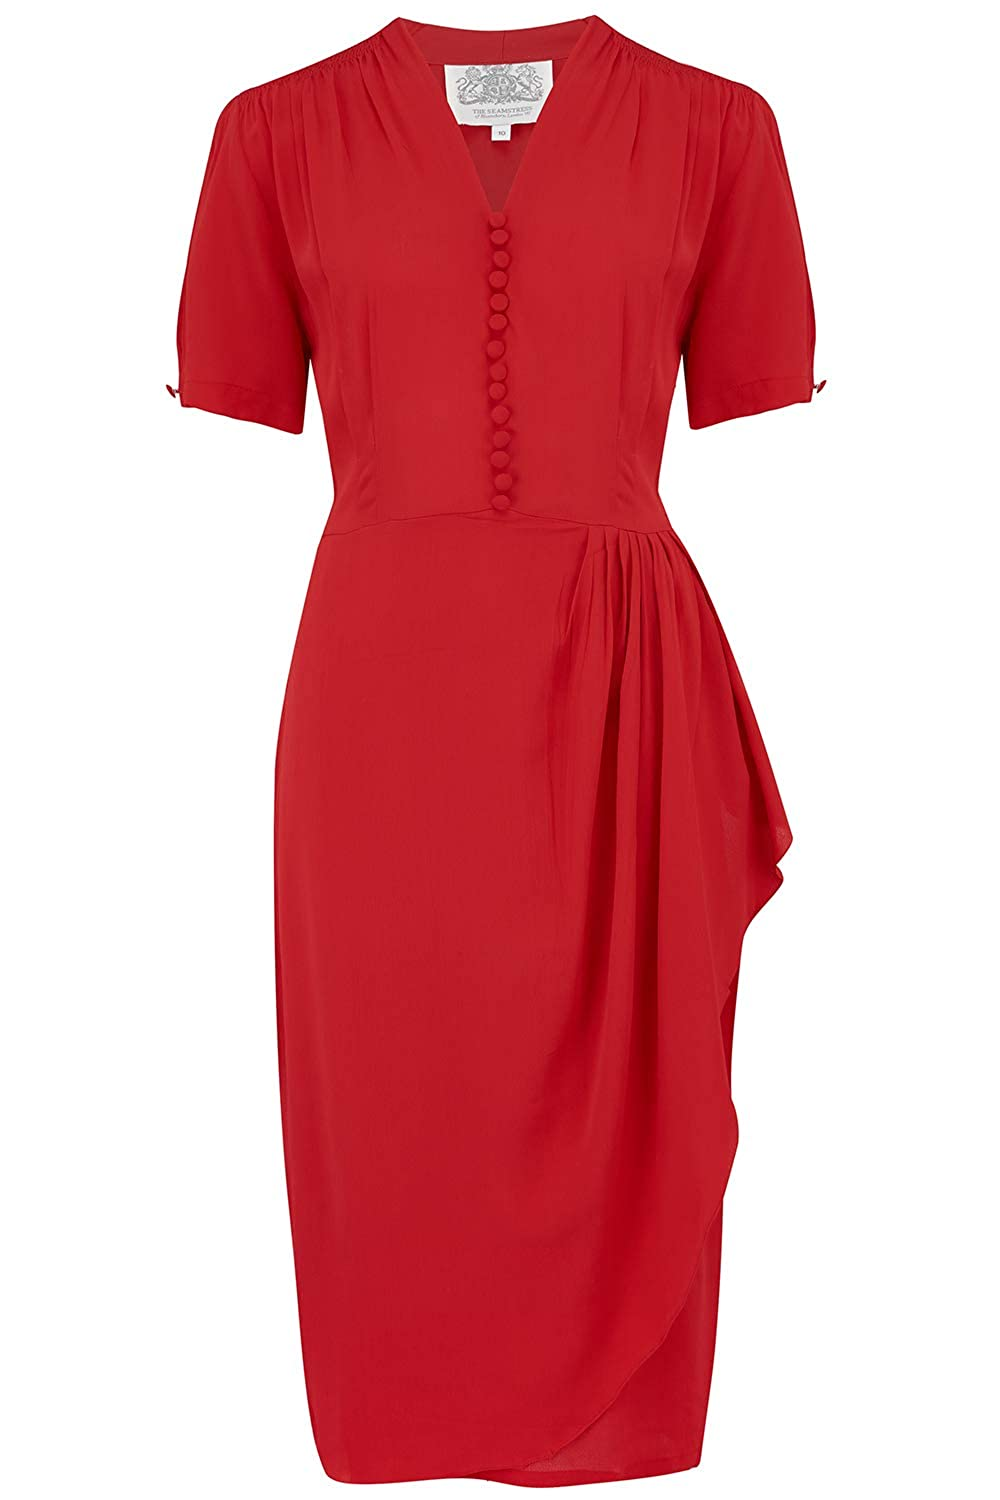 1940s Dresses and Clothing UK | 40s Shoes UK 40s Red Authentic Vintage 1940s Style The Seamstress of Bloomsbury Mabel Dress in  £79.00 AT vintagedancer.com